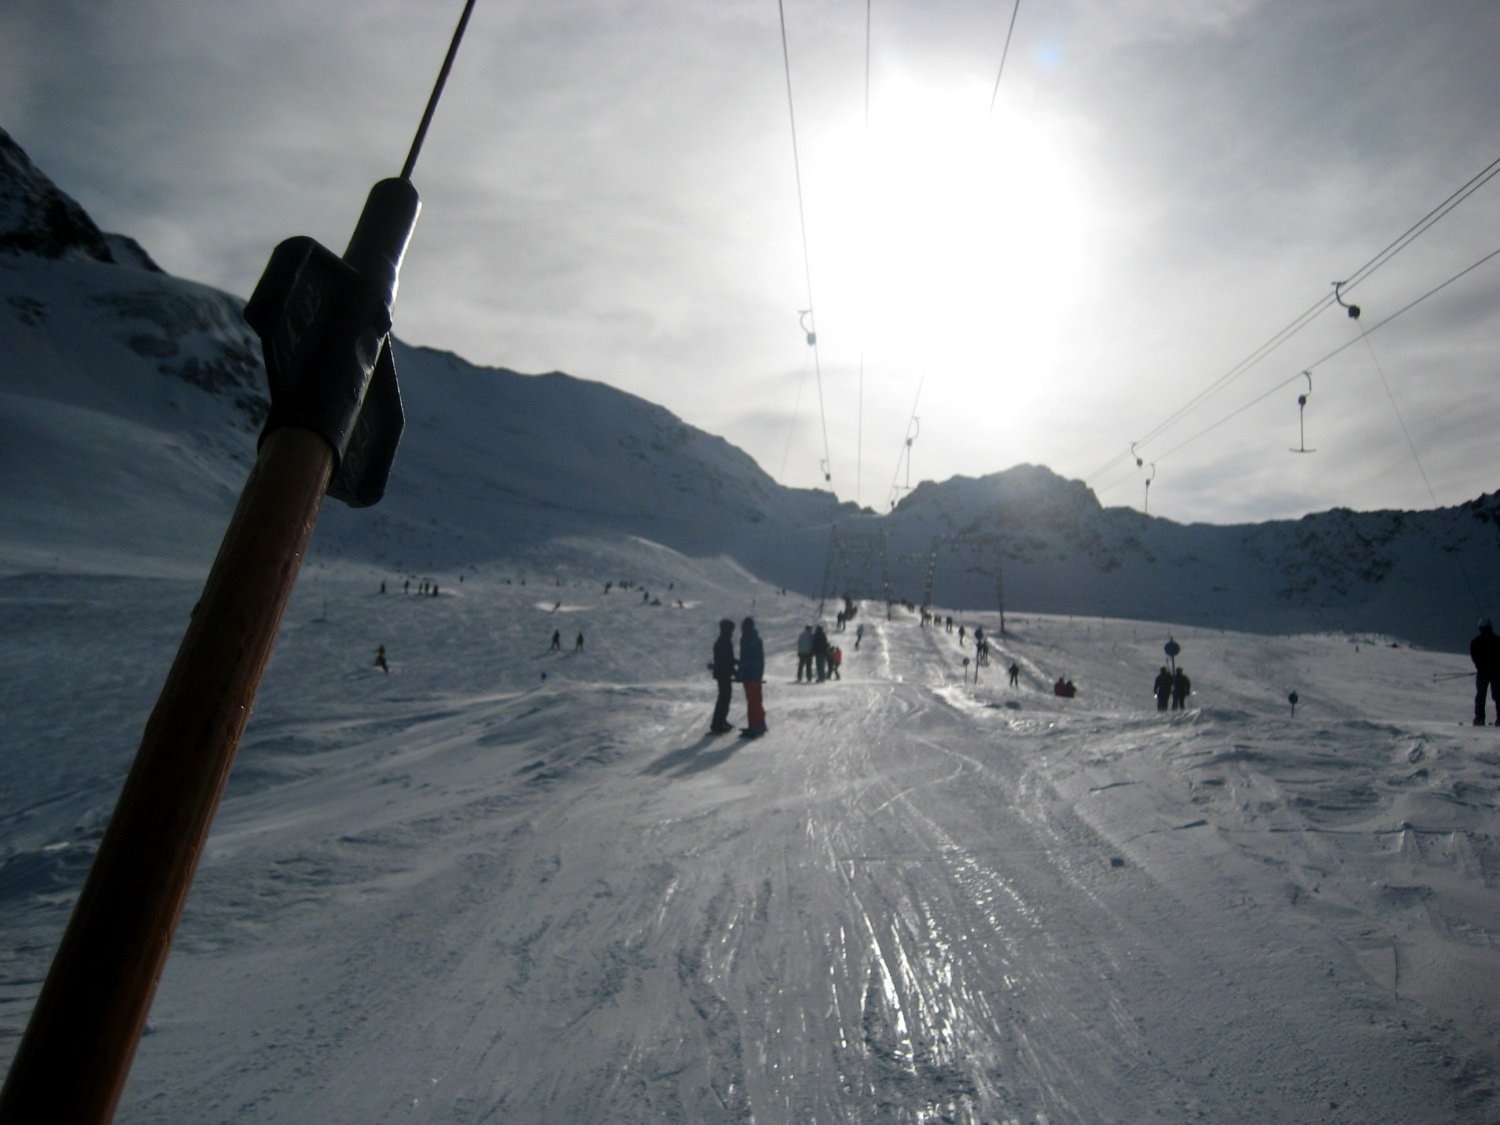 On the t-bar